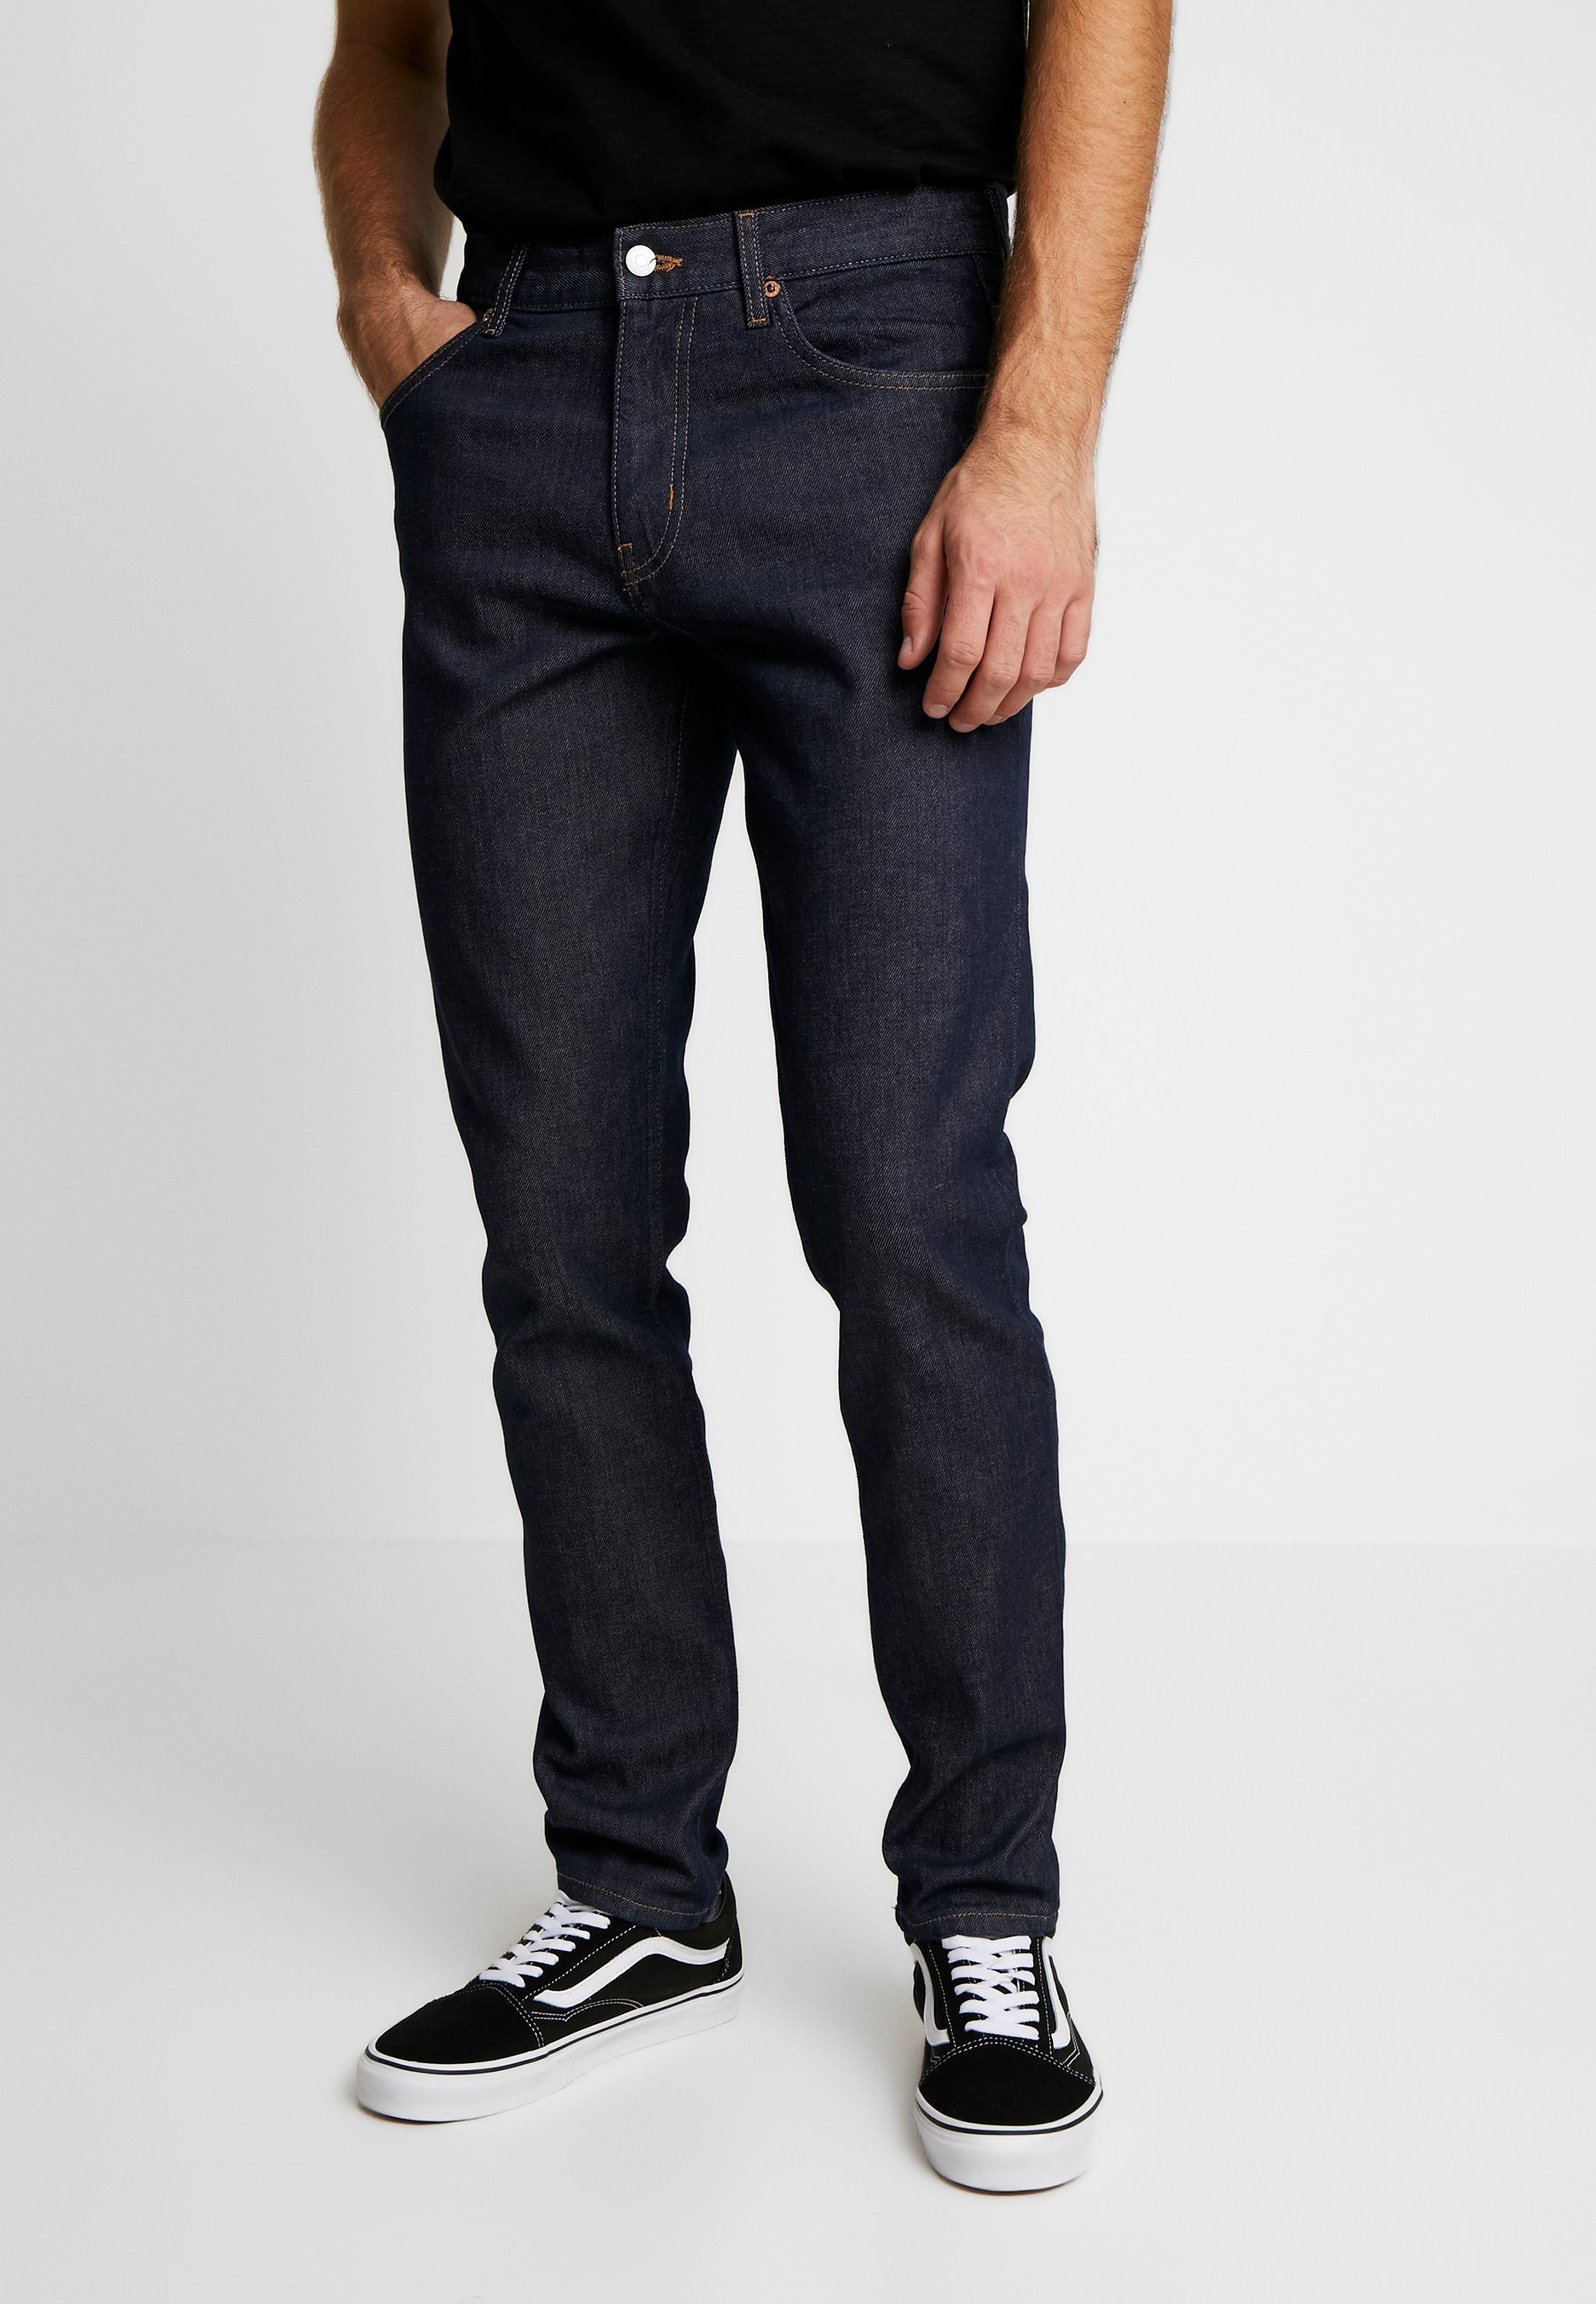 Uomo FRIDAY SOAKED - Jeans slim fit